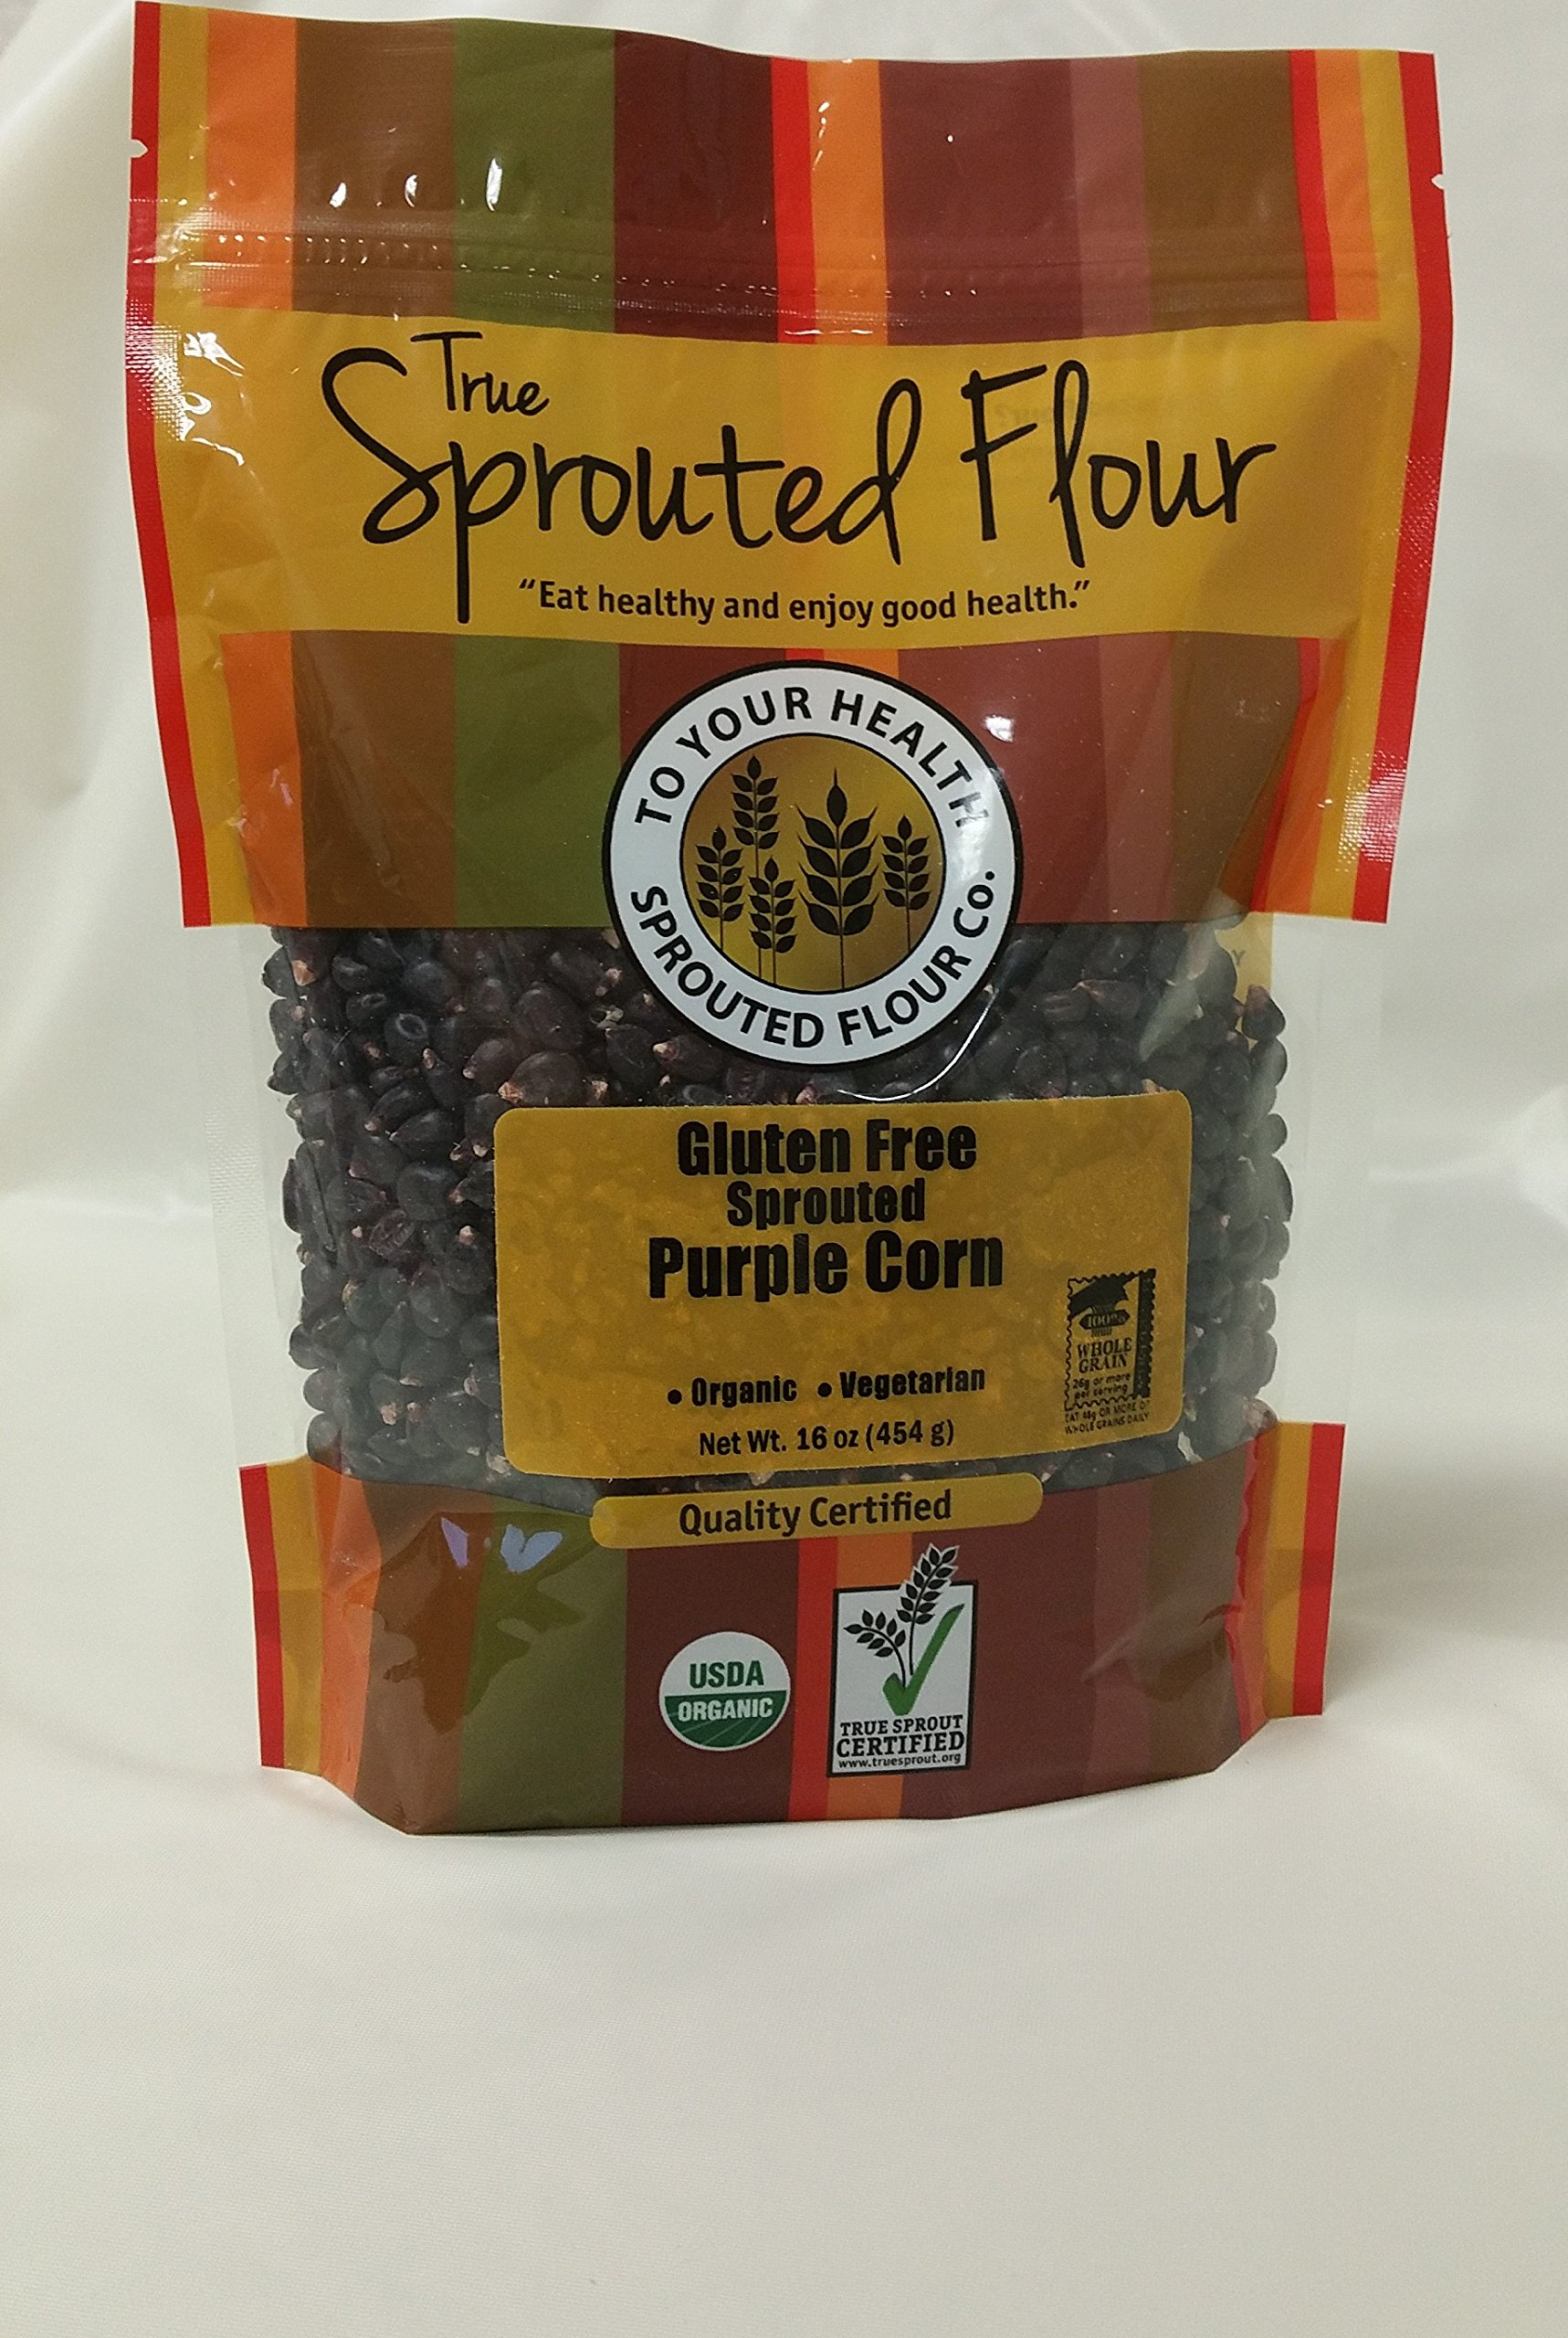 5lb. Organic, Sprouted Purple Corn by To Your Health Sprouted Flour Co.